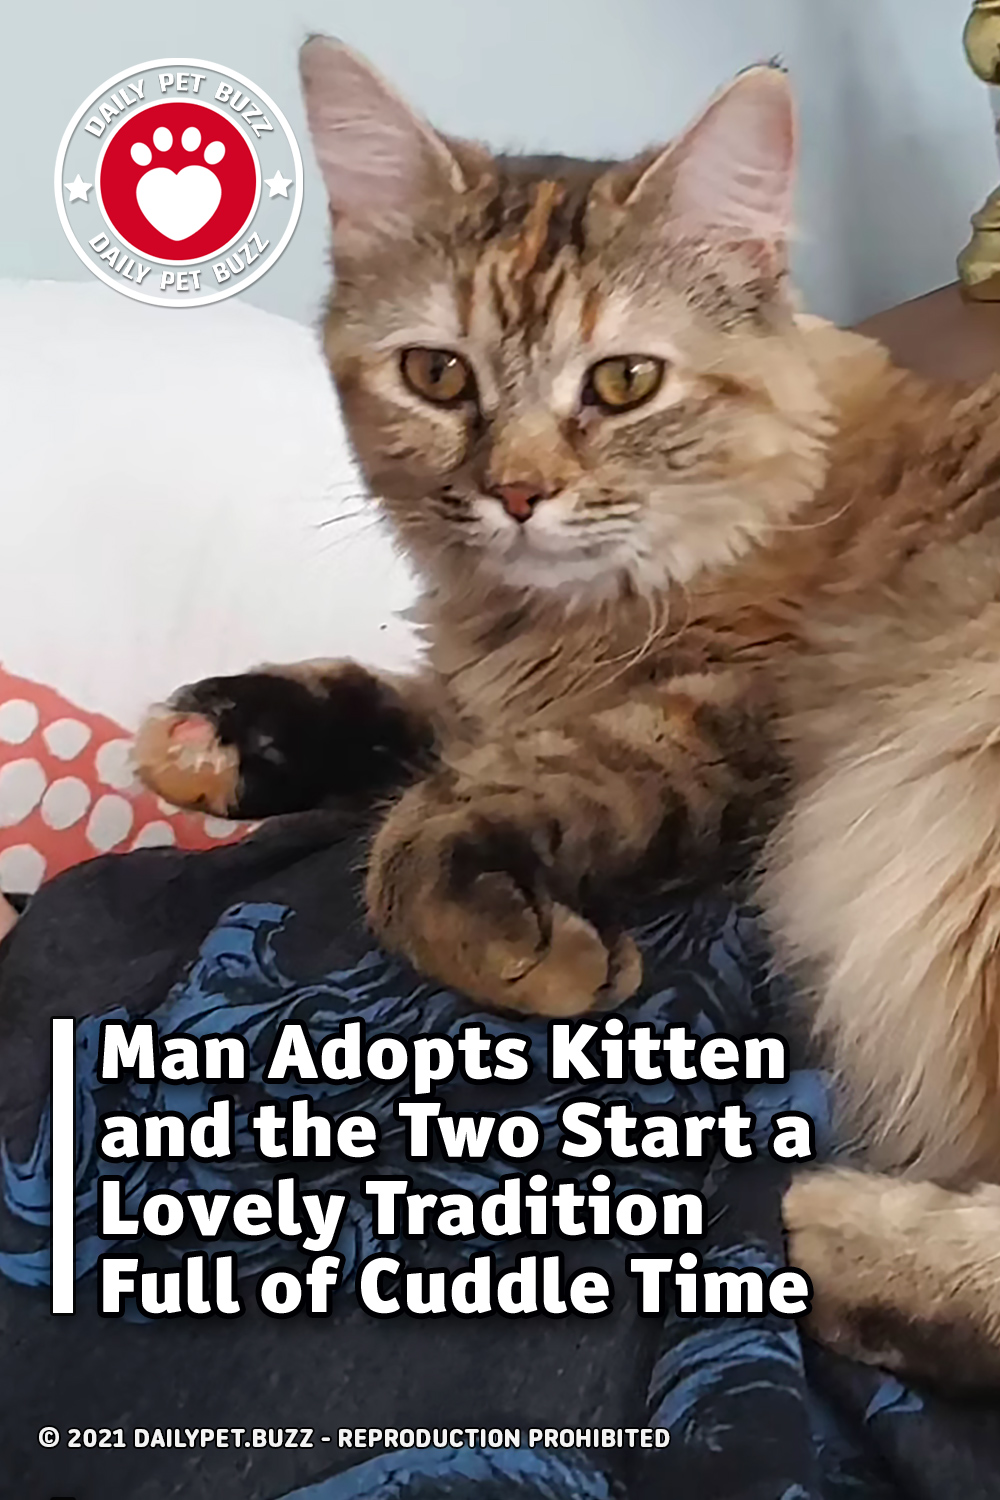 Man Adopts Kitten and the Two Start a Lovely Tradition Full of Cuddle Time